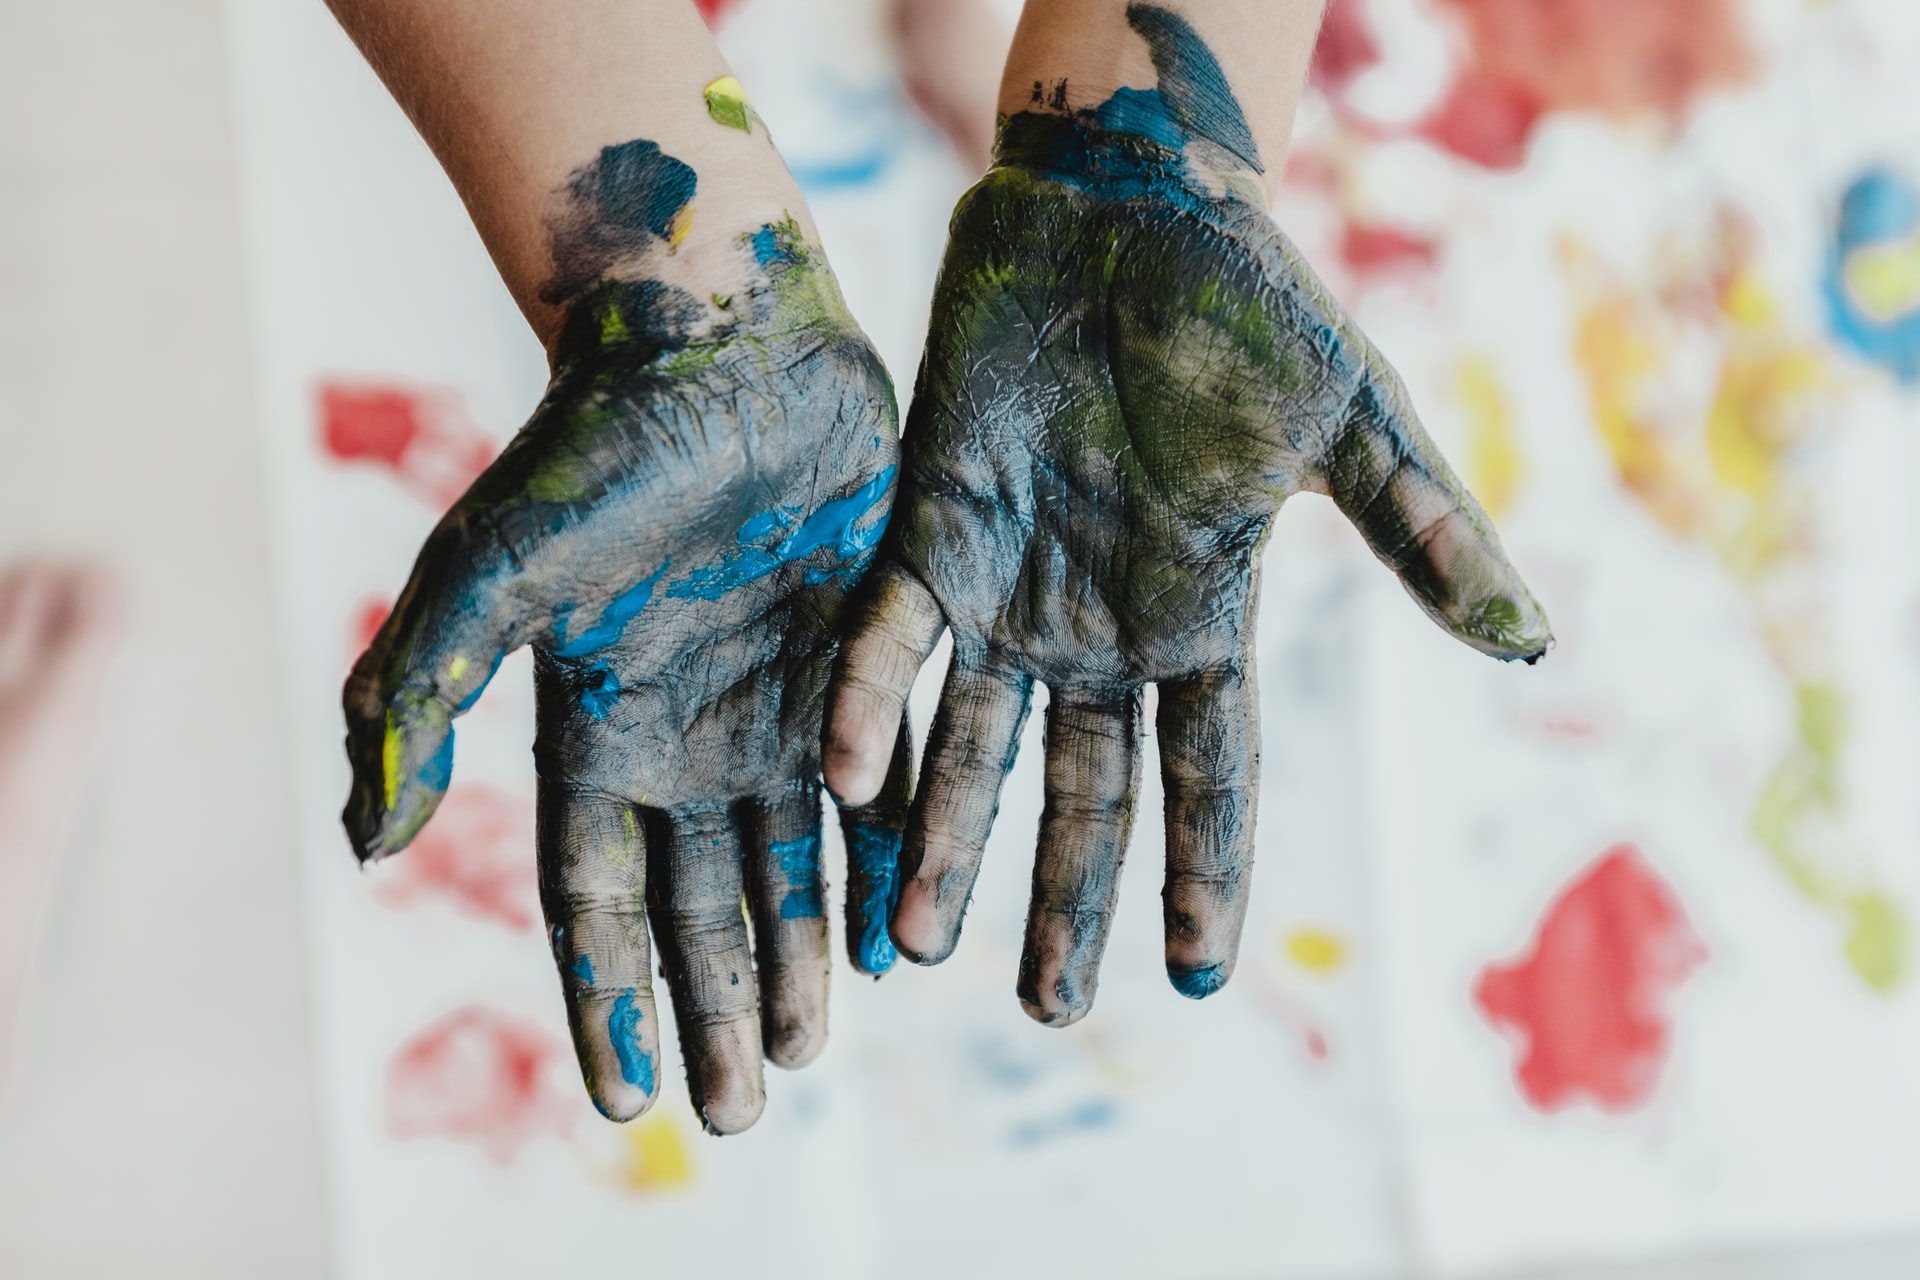 30 Fun & Creative Ideas That Are Calming for Kids of All Ages (Part I)